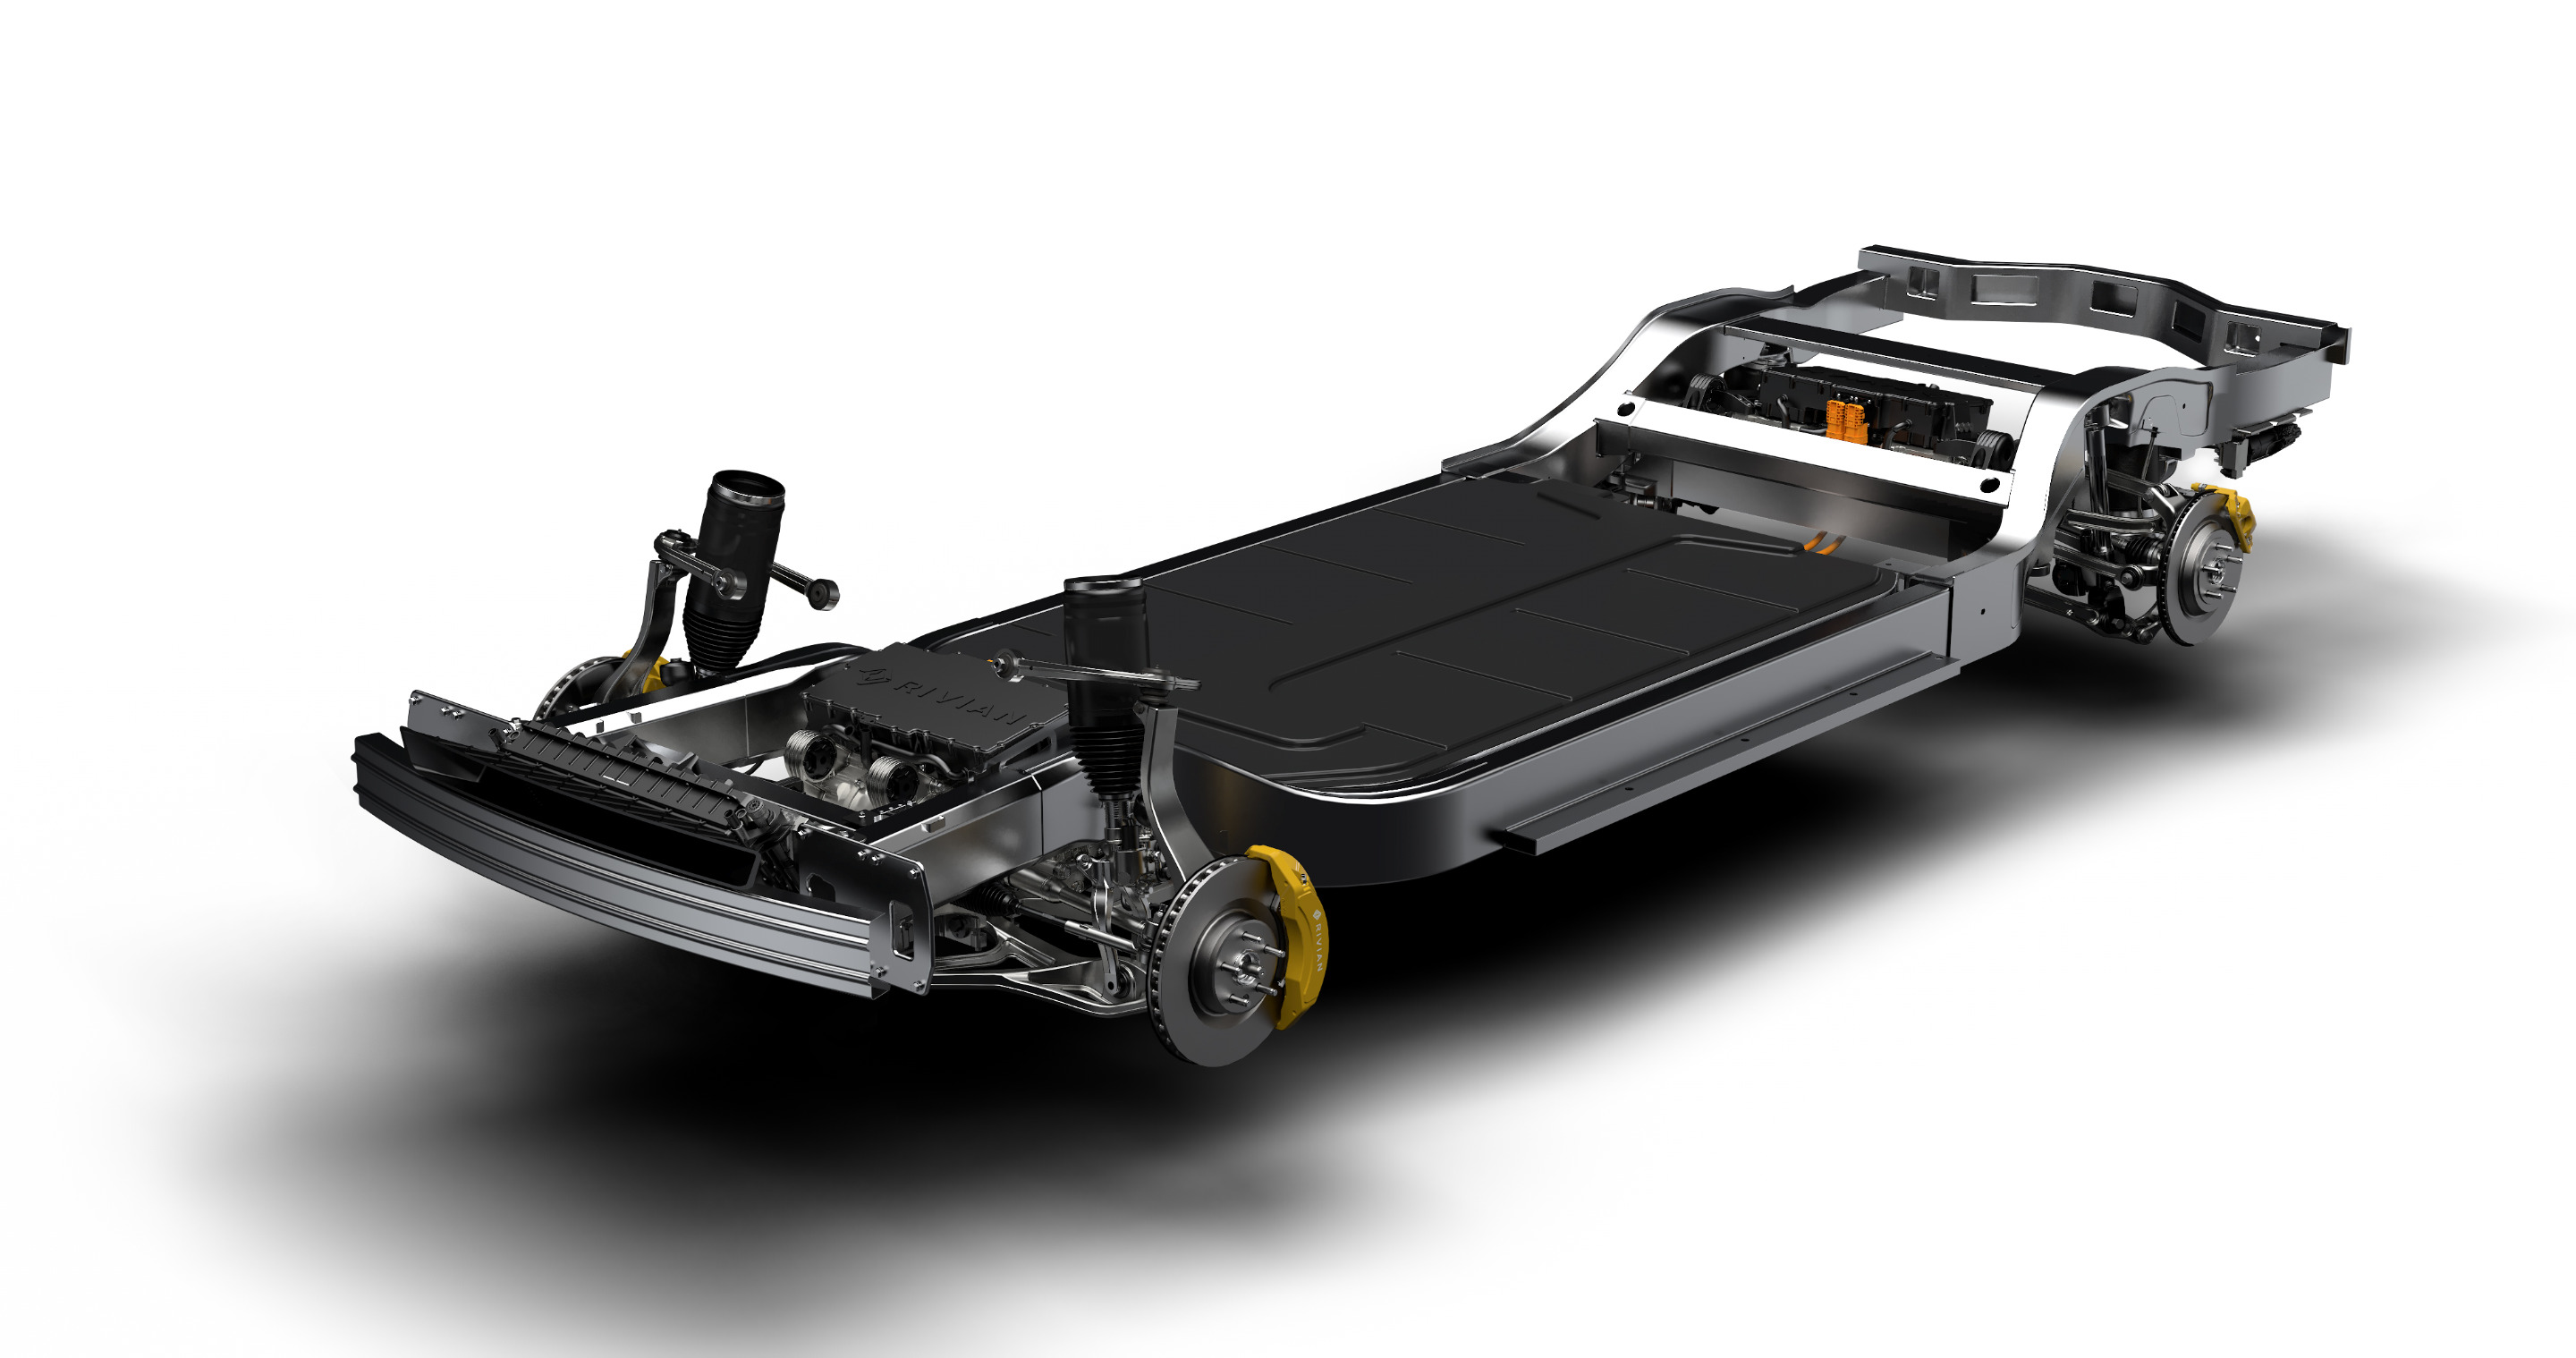 2018_11_CHASSIS_front_34_edited.jpg